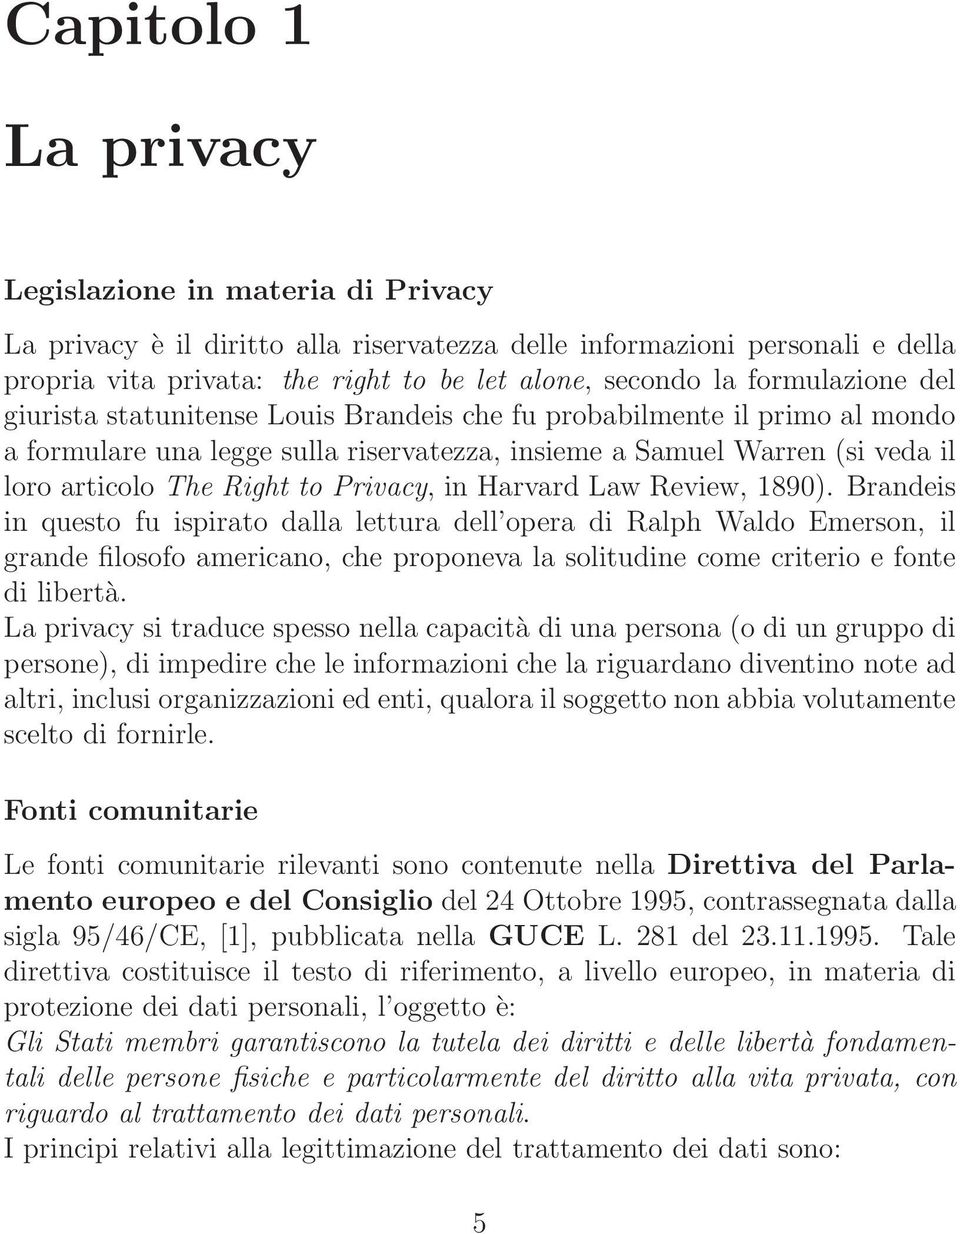 Privacy, in Harvard Law Review, 1890).